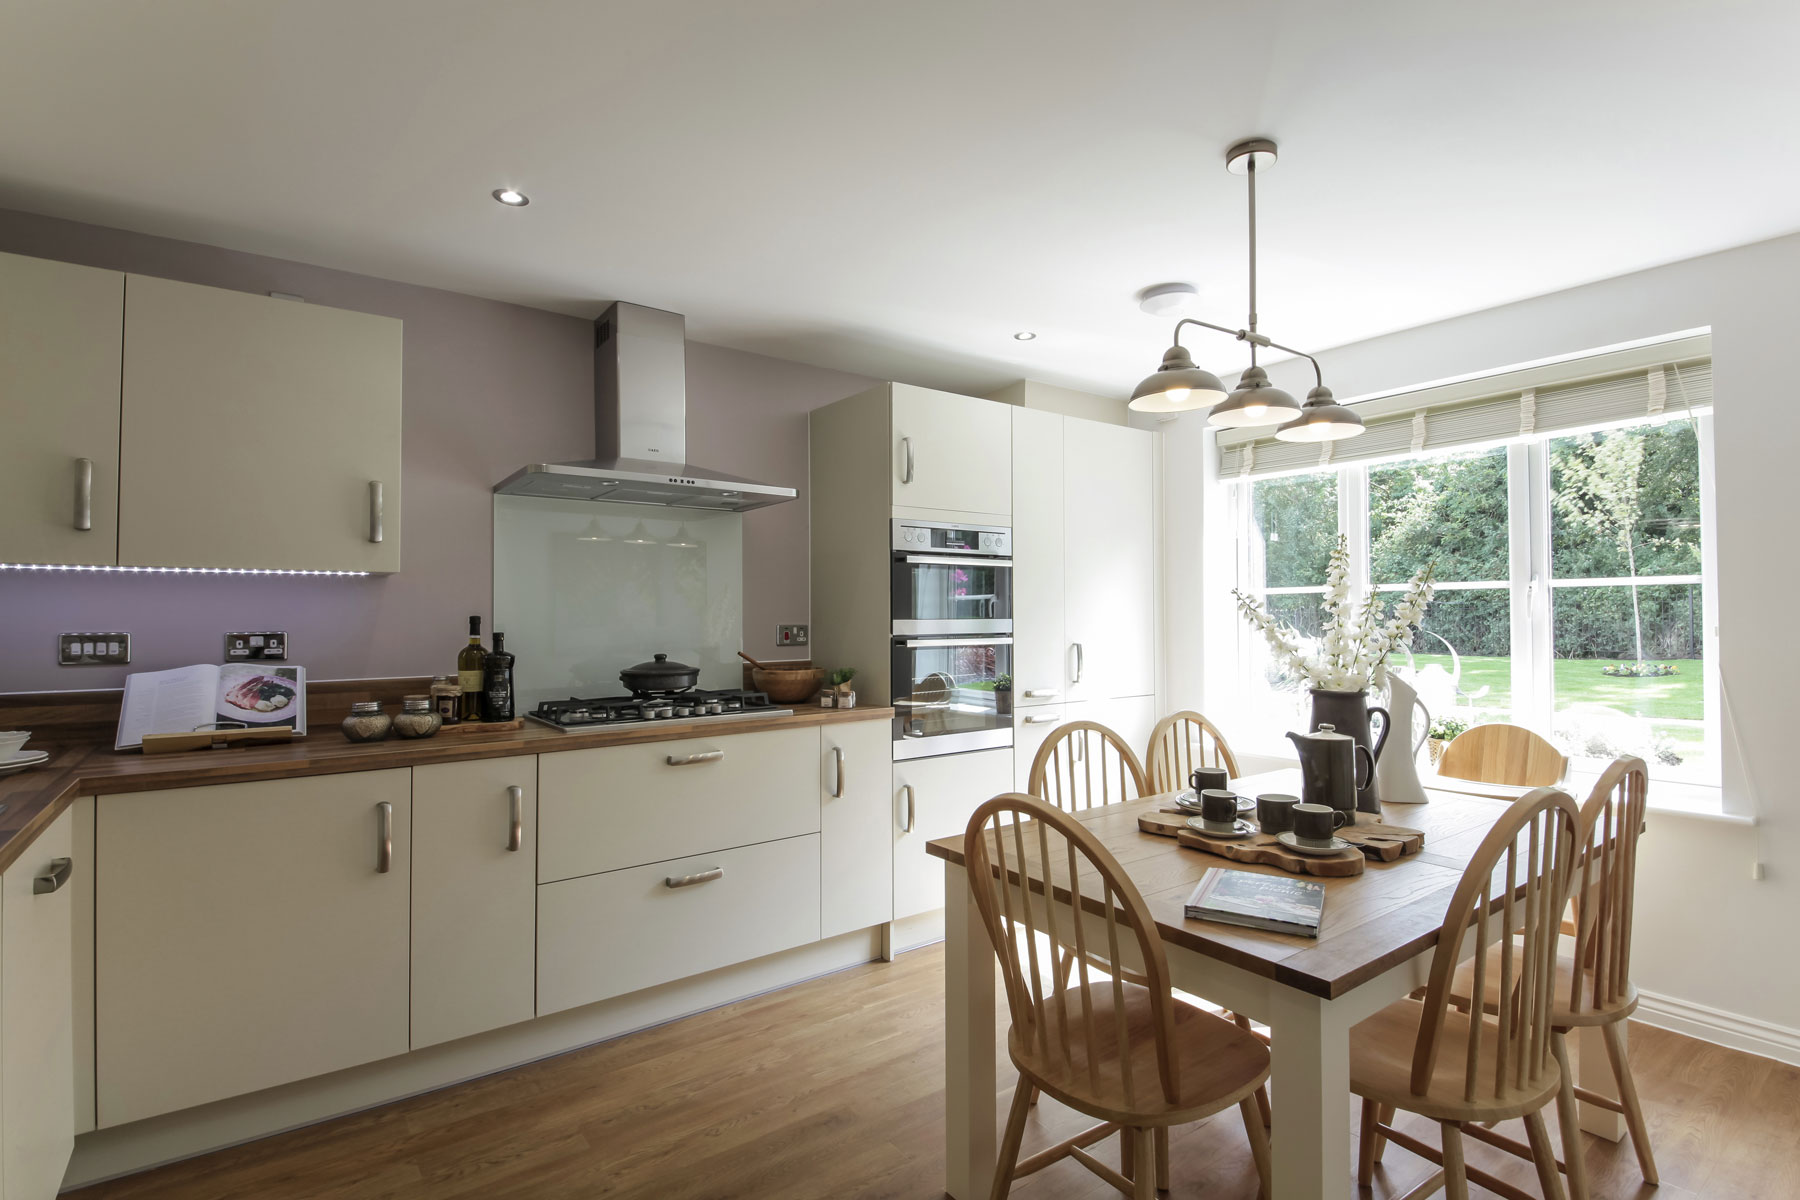 TW Exeter - Gwel An Hay - Monkford example kitchen